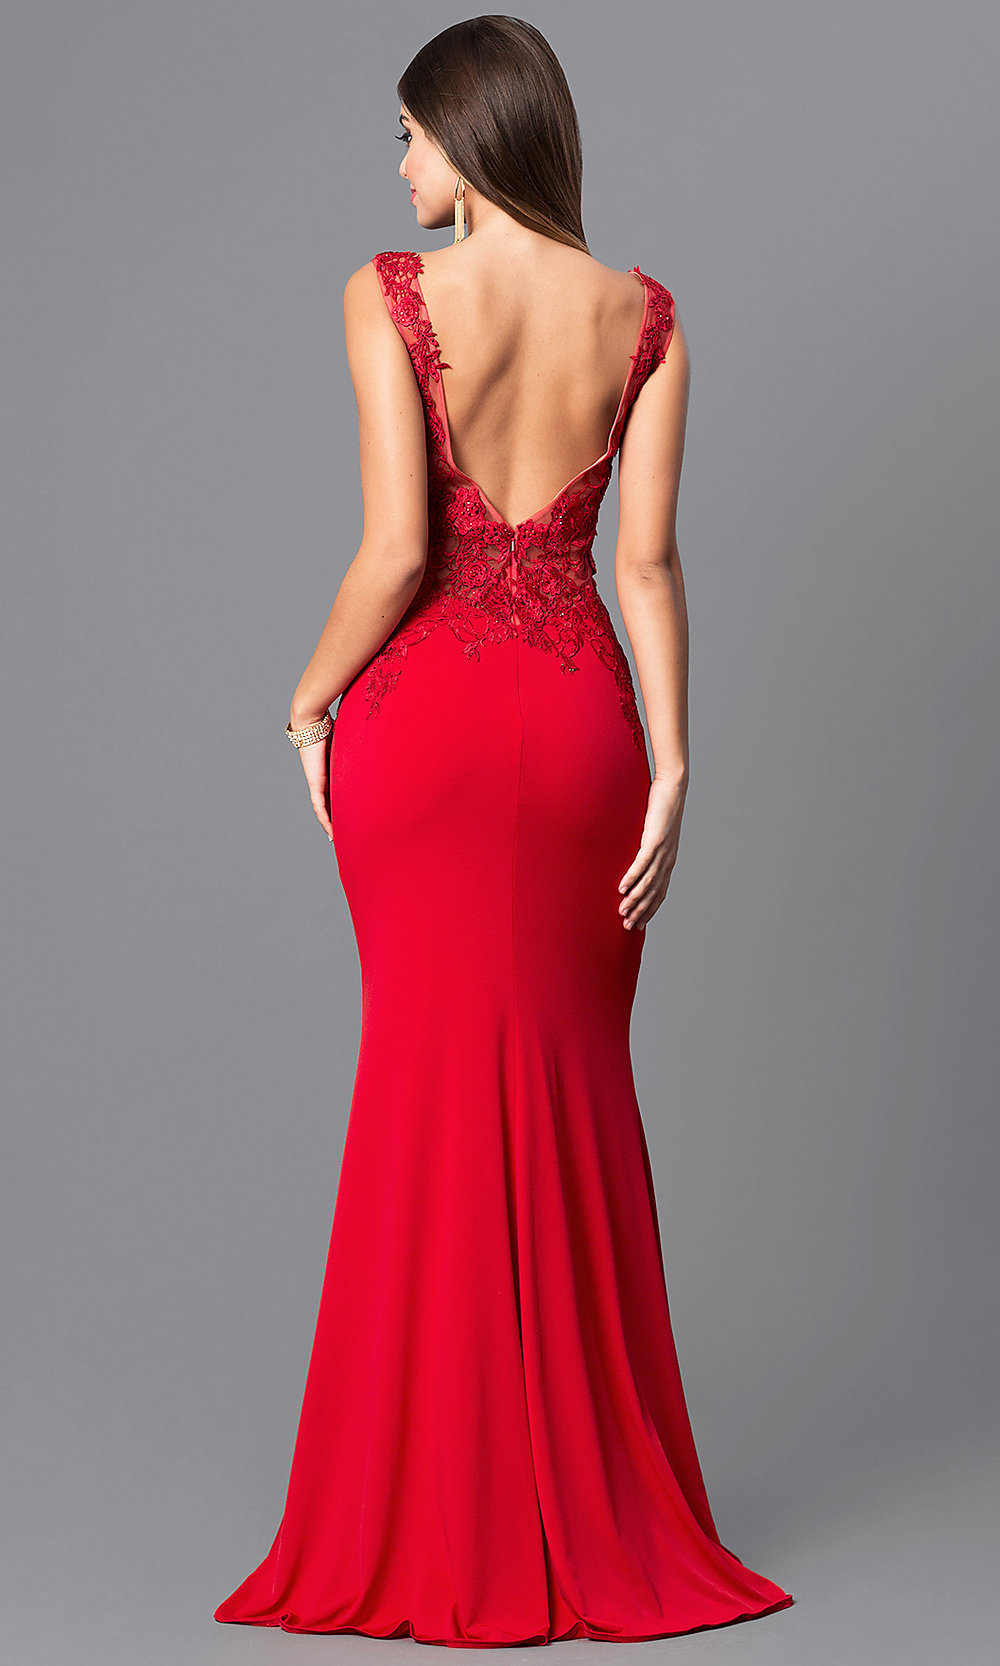 JVNX by Jovani Red Prom Dress with Lace - PromGirlRed Dresses